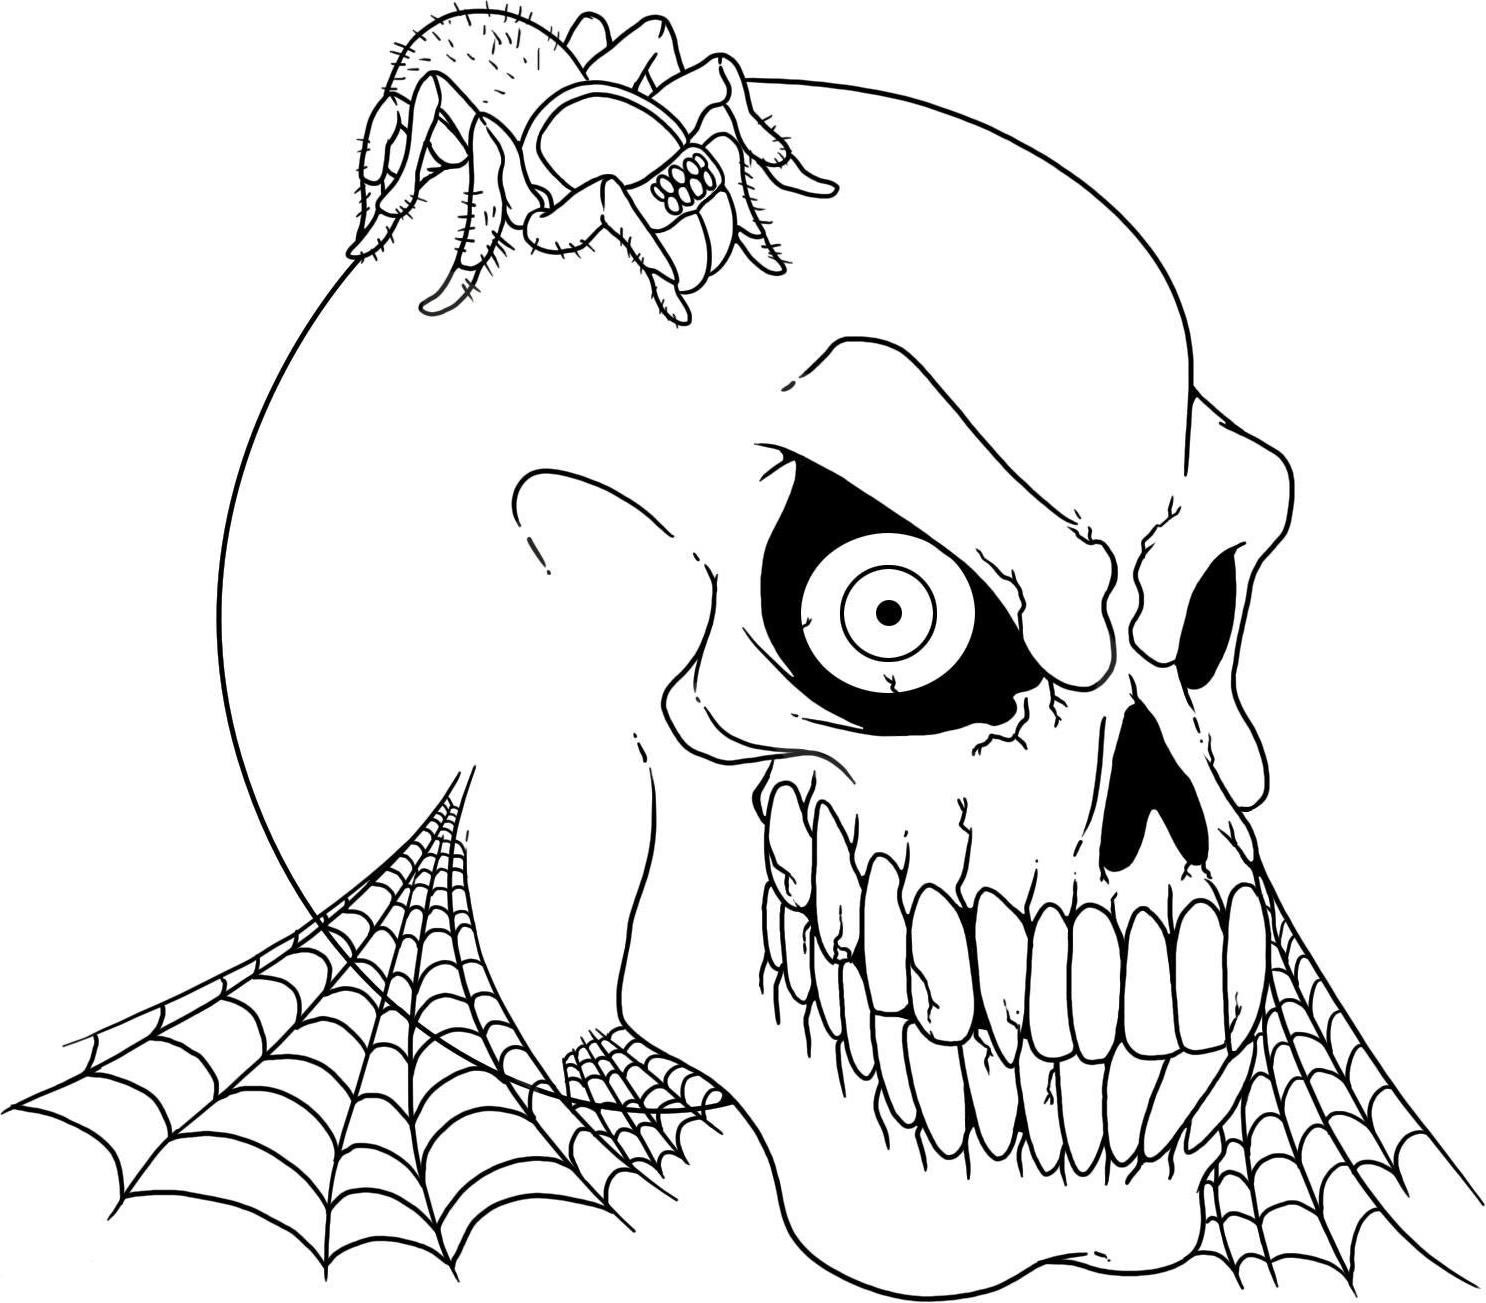 Best ideas about Free Coloring Pages Com . Save or Pin Free Coloring Pages Halloween 1910 Bestofcoloring Now.